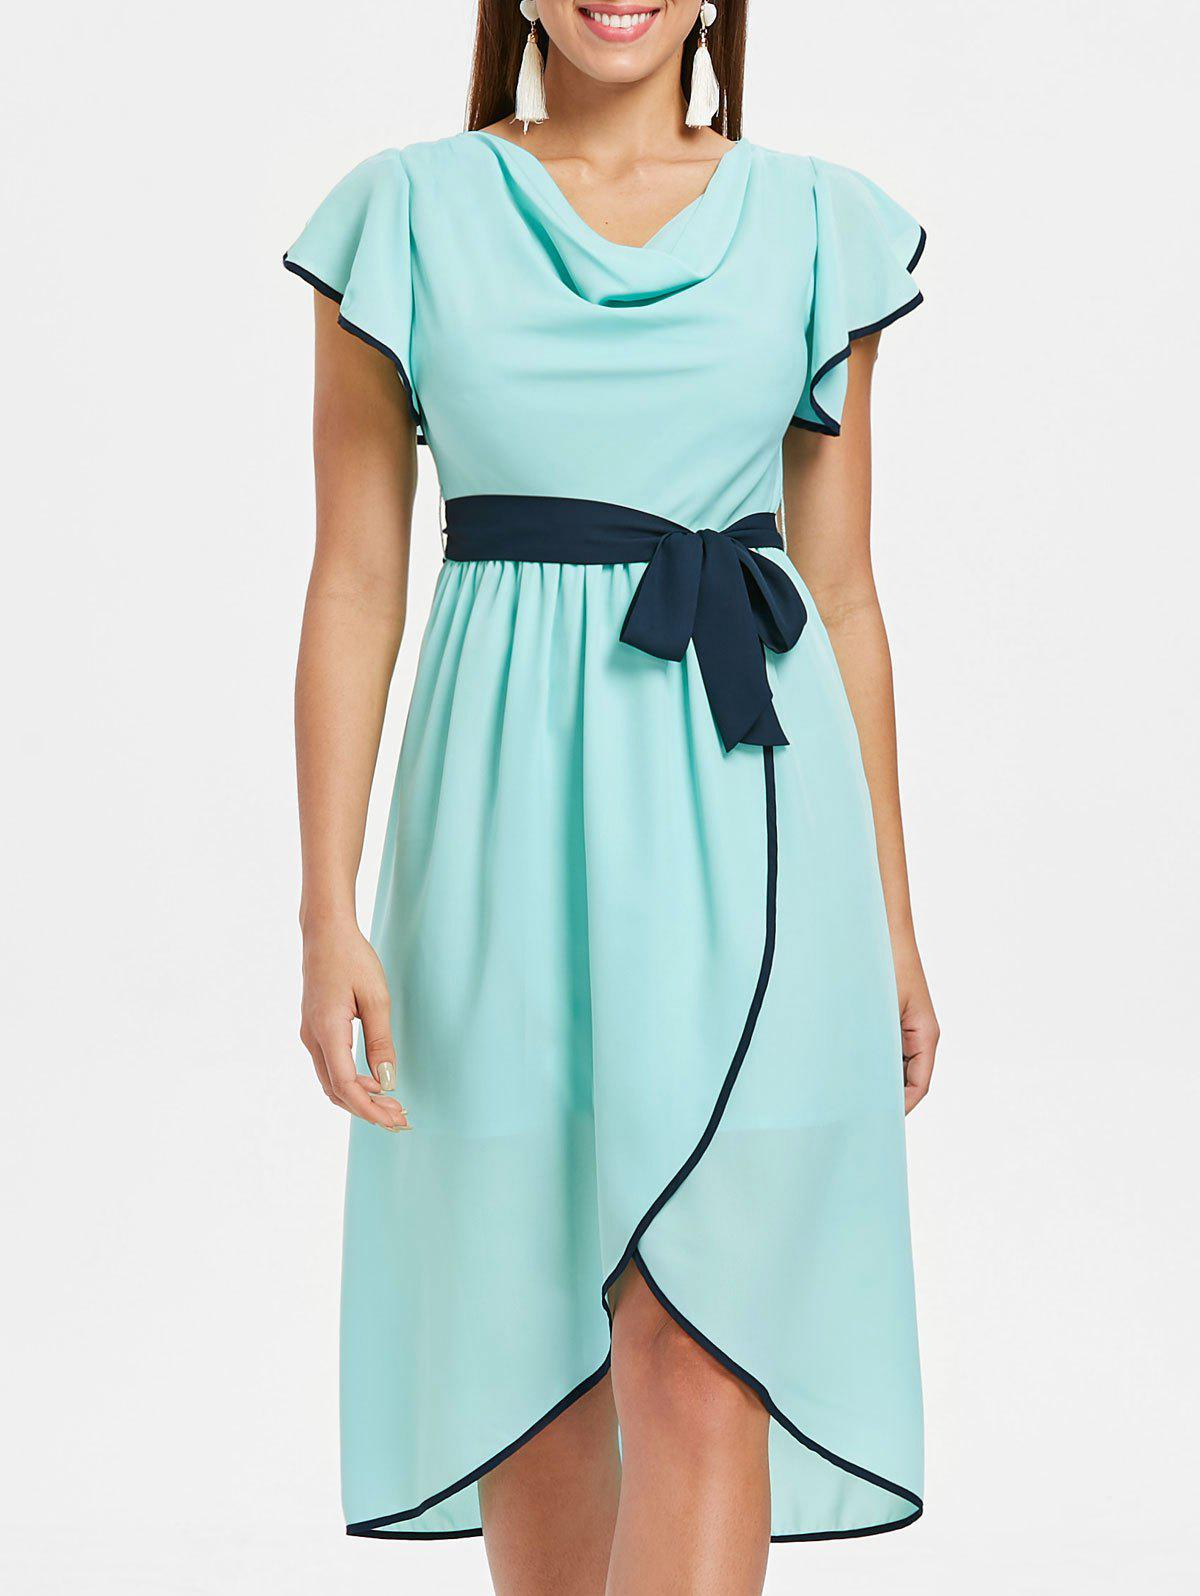 Ruffle Sleeve Midi Chiffon Tulip Dress - BLUE GREEN 2XL